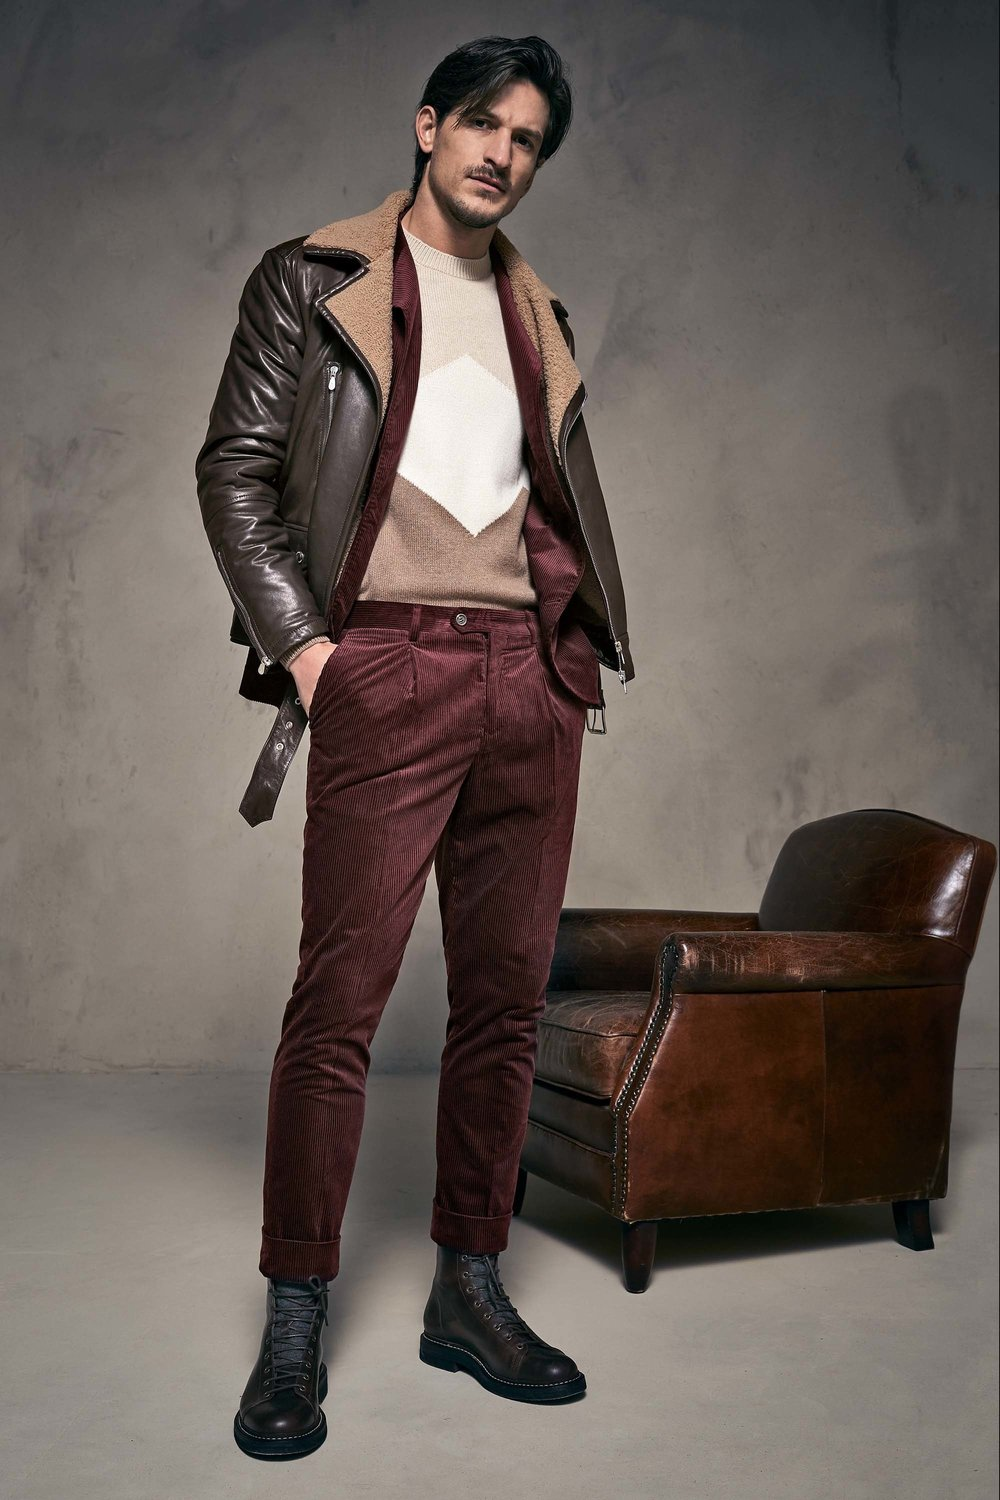 07-brunello-cucinelli-fw18-mens-lookbook.jpg